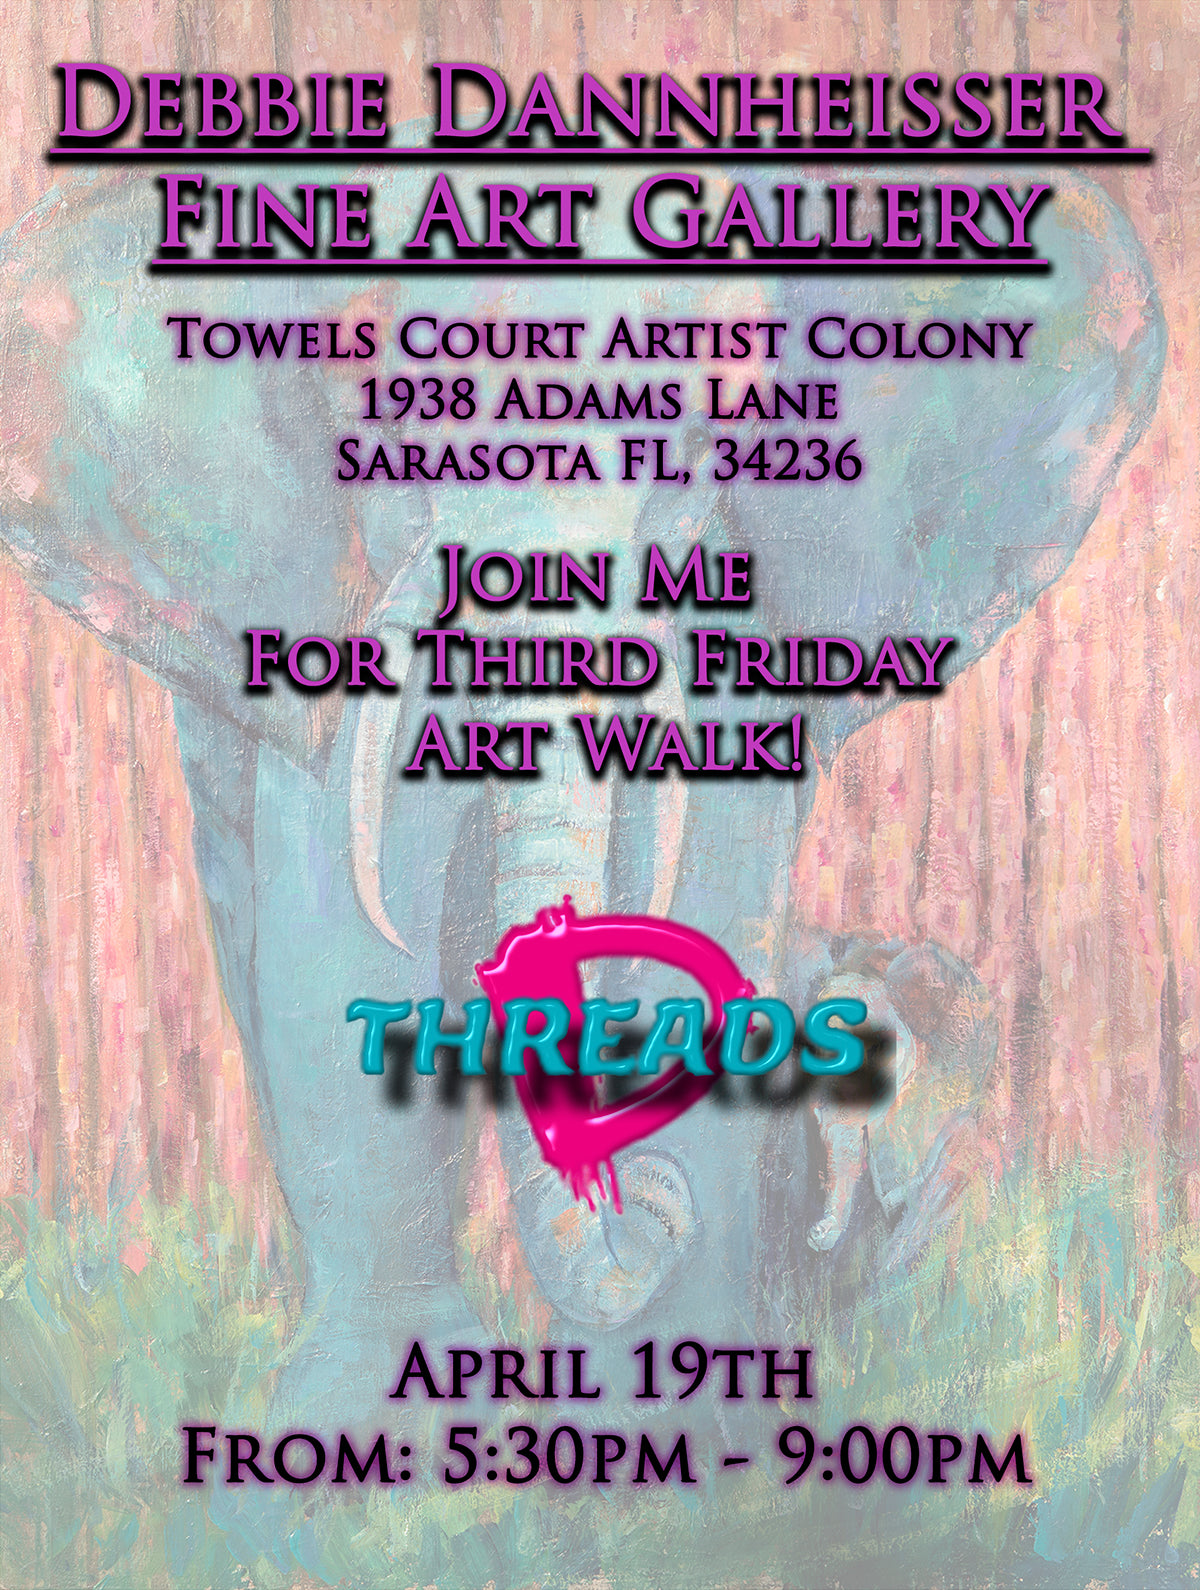 Joing Us For Third Friday Art Walk!